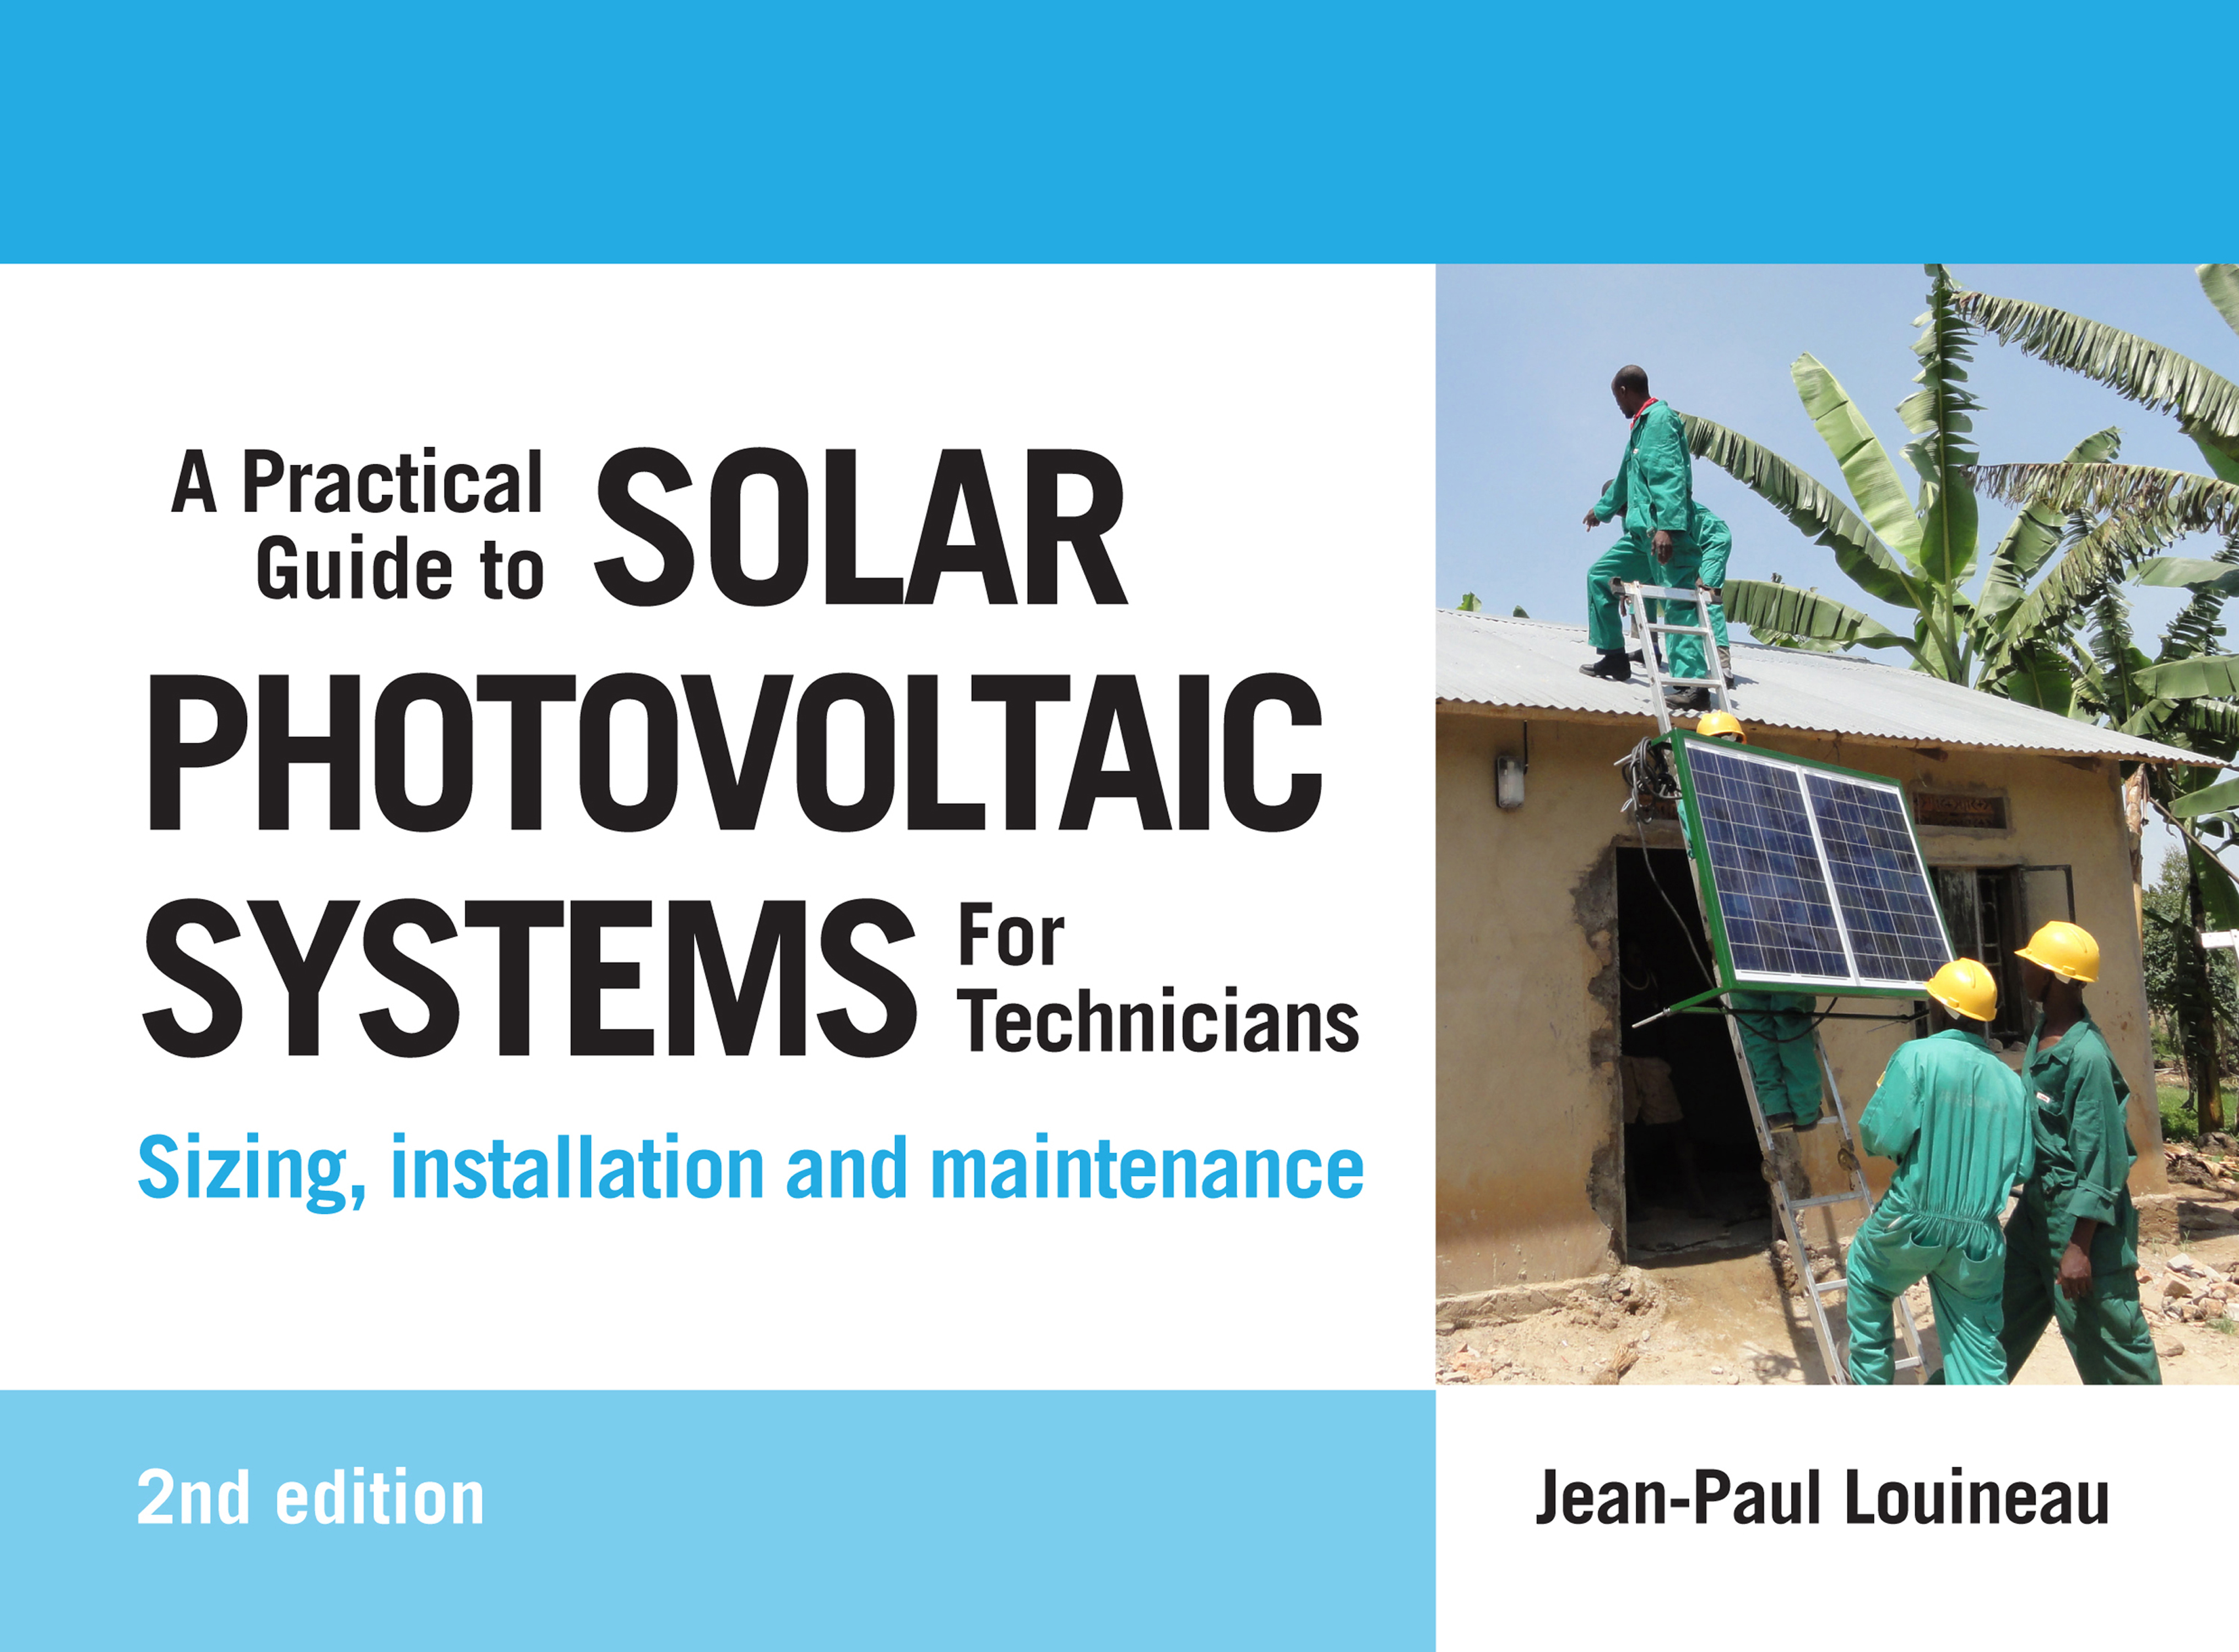 A Practical Guide to Solar Photovoltaic Systems for Technicians